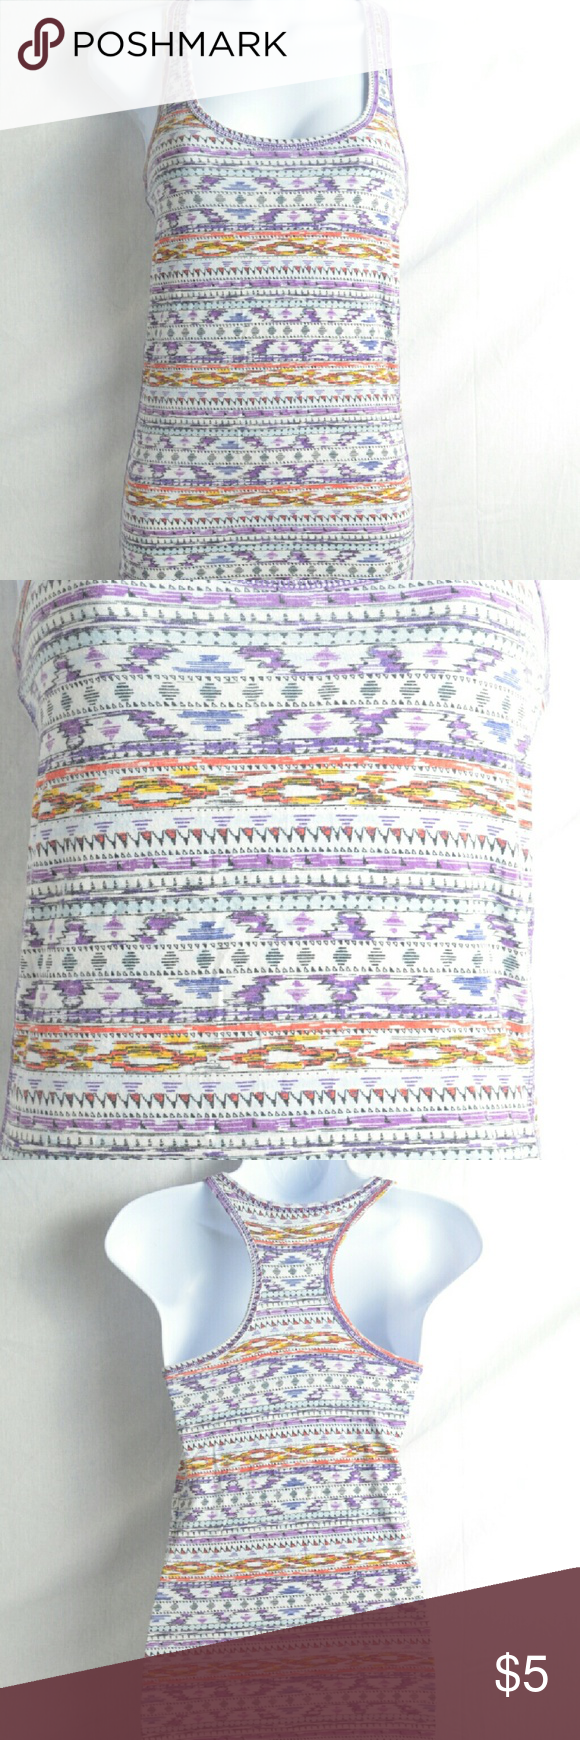 Aztec Design Tank Top By Active Basic This is a very nice tank top from Active Basic that has multiple colors of Aztec designs all over it.  This features a racerback design and is very comfortable to wear.  There are no flaws in this top and is size large.  #activebasic #aztec #aztecdesigns #tanktop #large #sizelarge #racerback Active Basic Tops Tank Tops